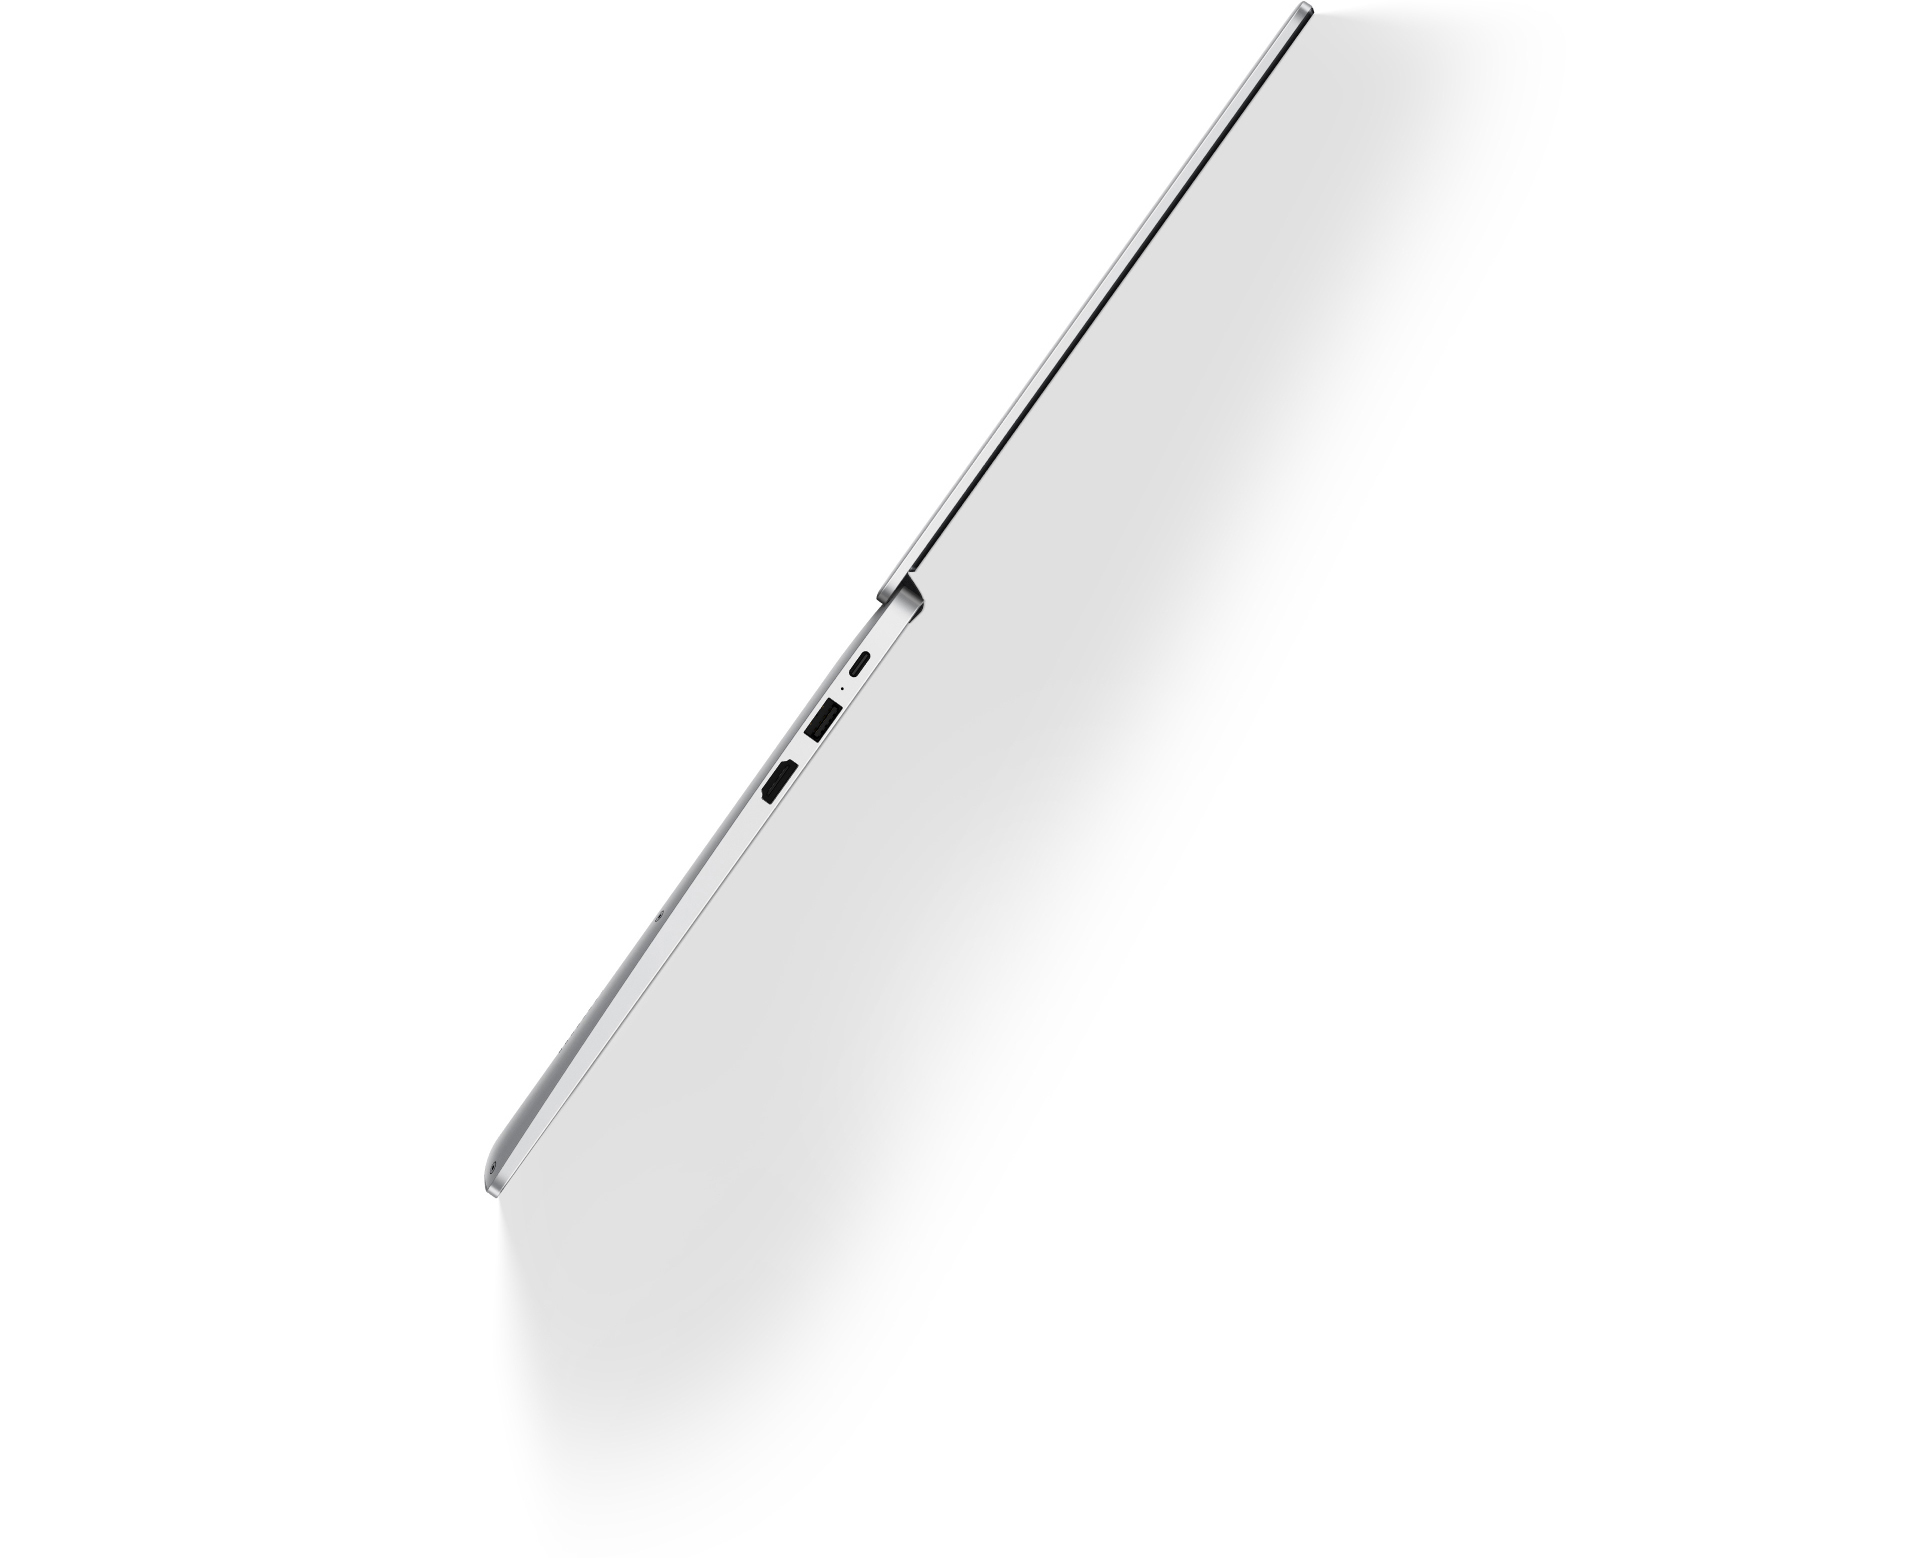 HUAWEI MateBook D 14 lightweight notebook